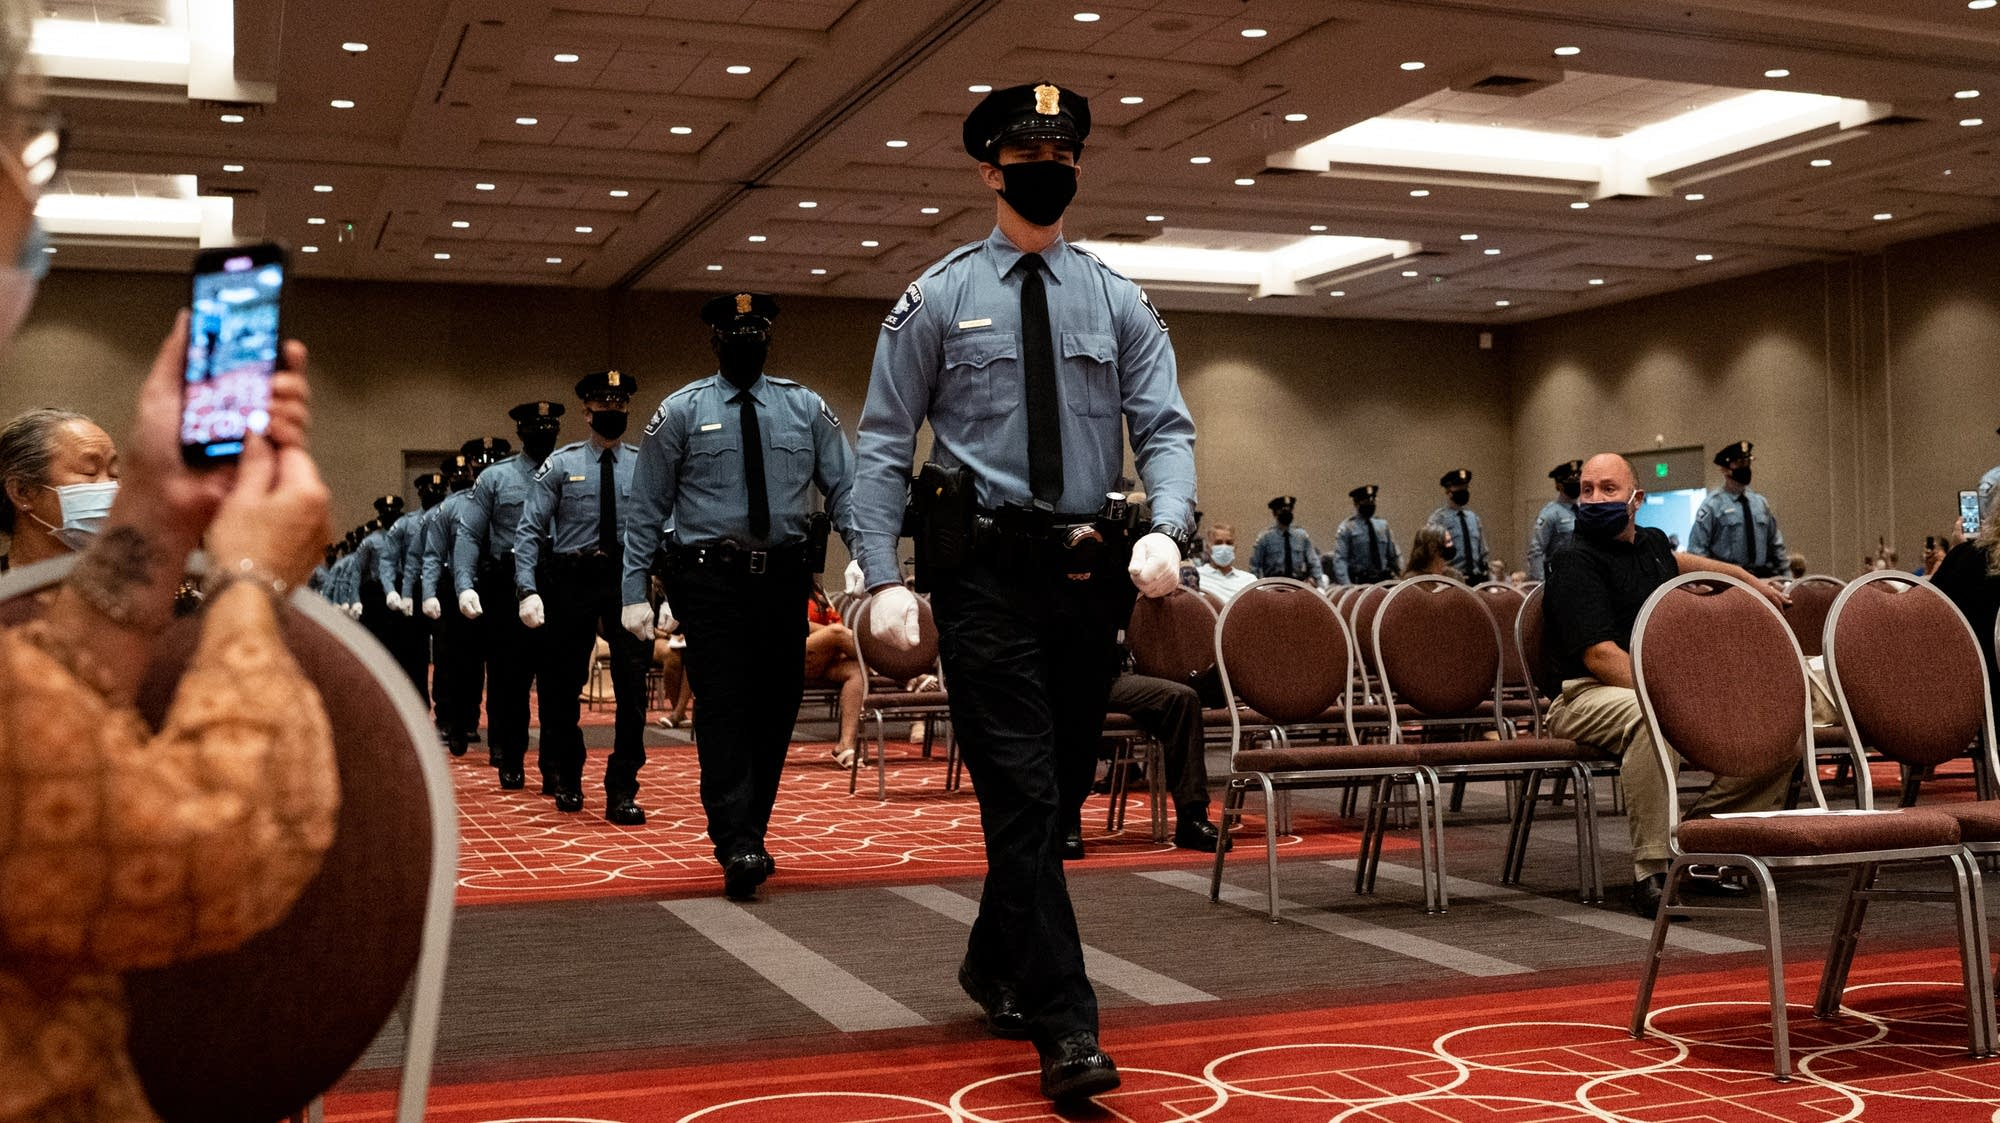 Minneapolis police welcome 29 recruits, who 'pulled